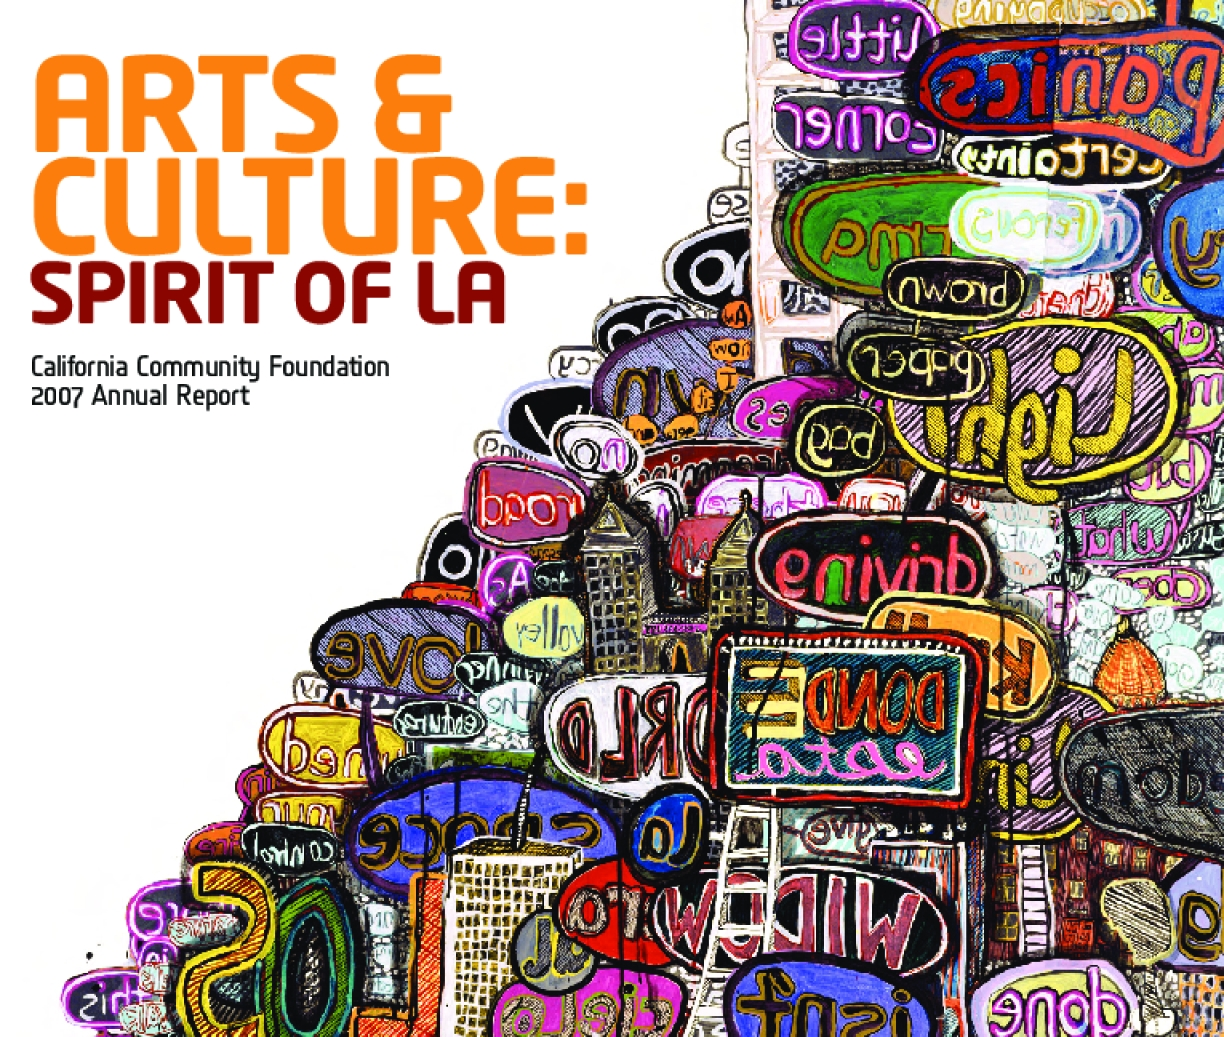 California Community Foundation - Arts and Culture: Spirit of LA: 2007 Annual Report